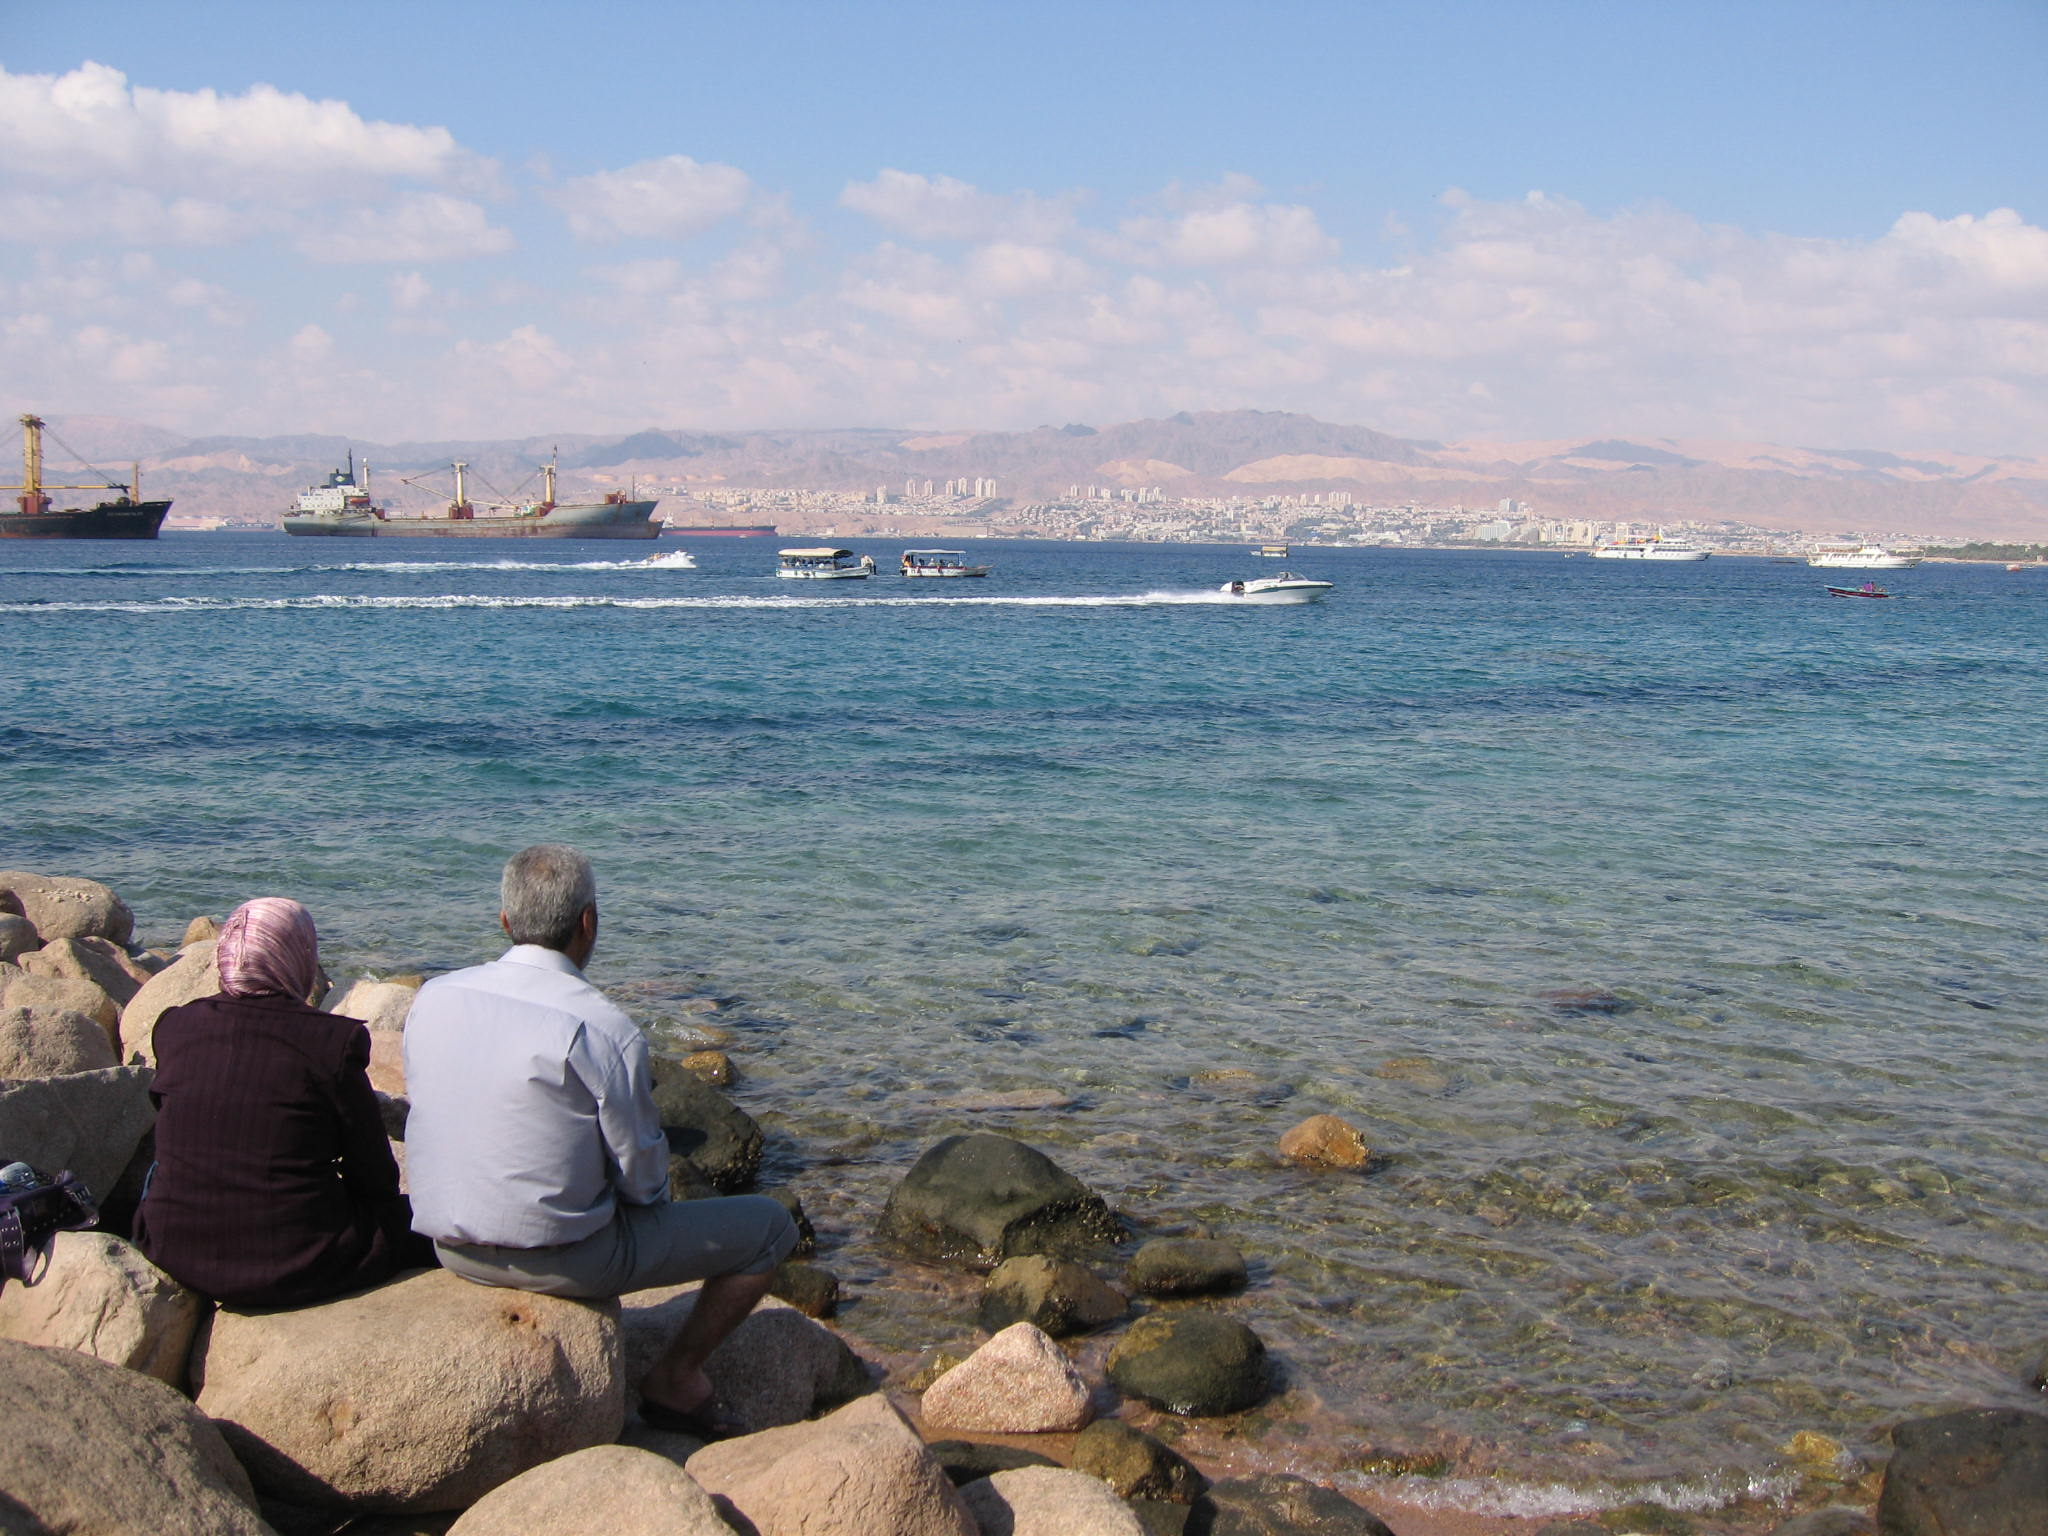 aqaba, view of red sea, boats